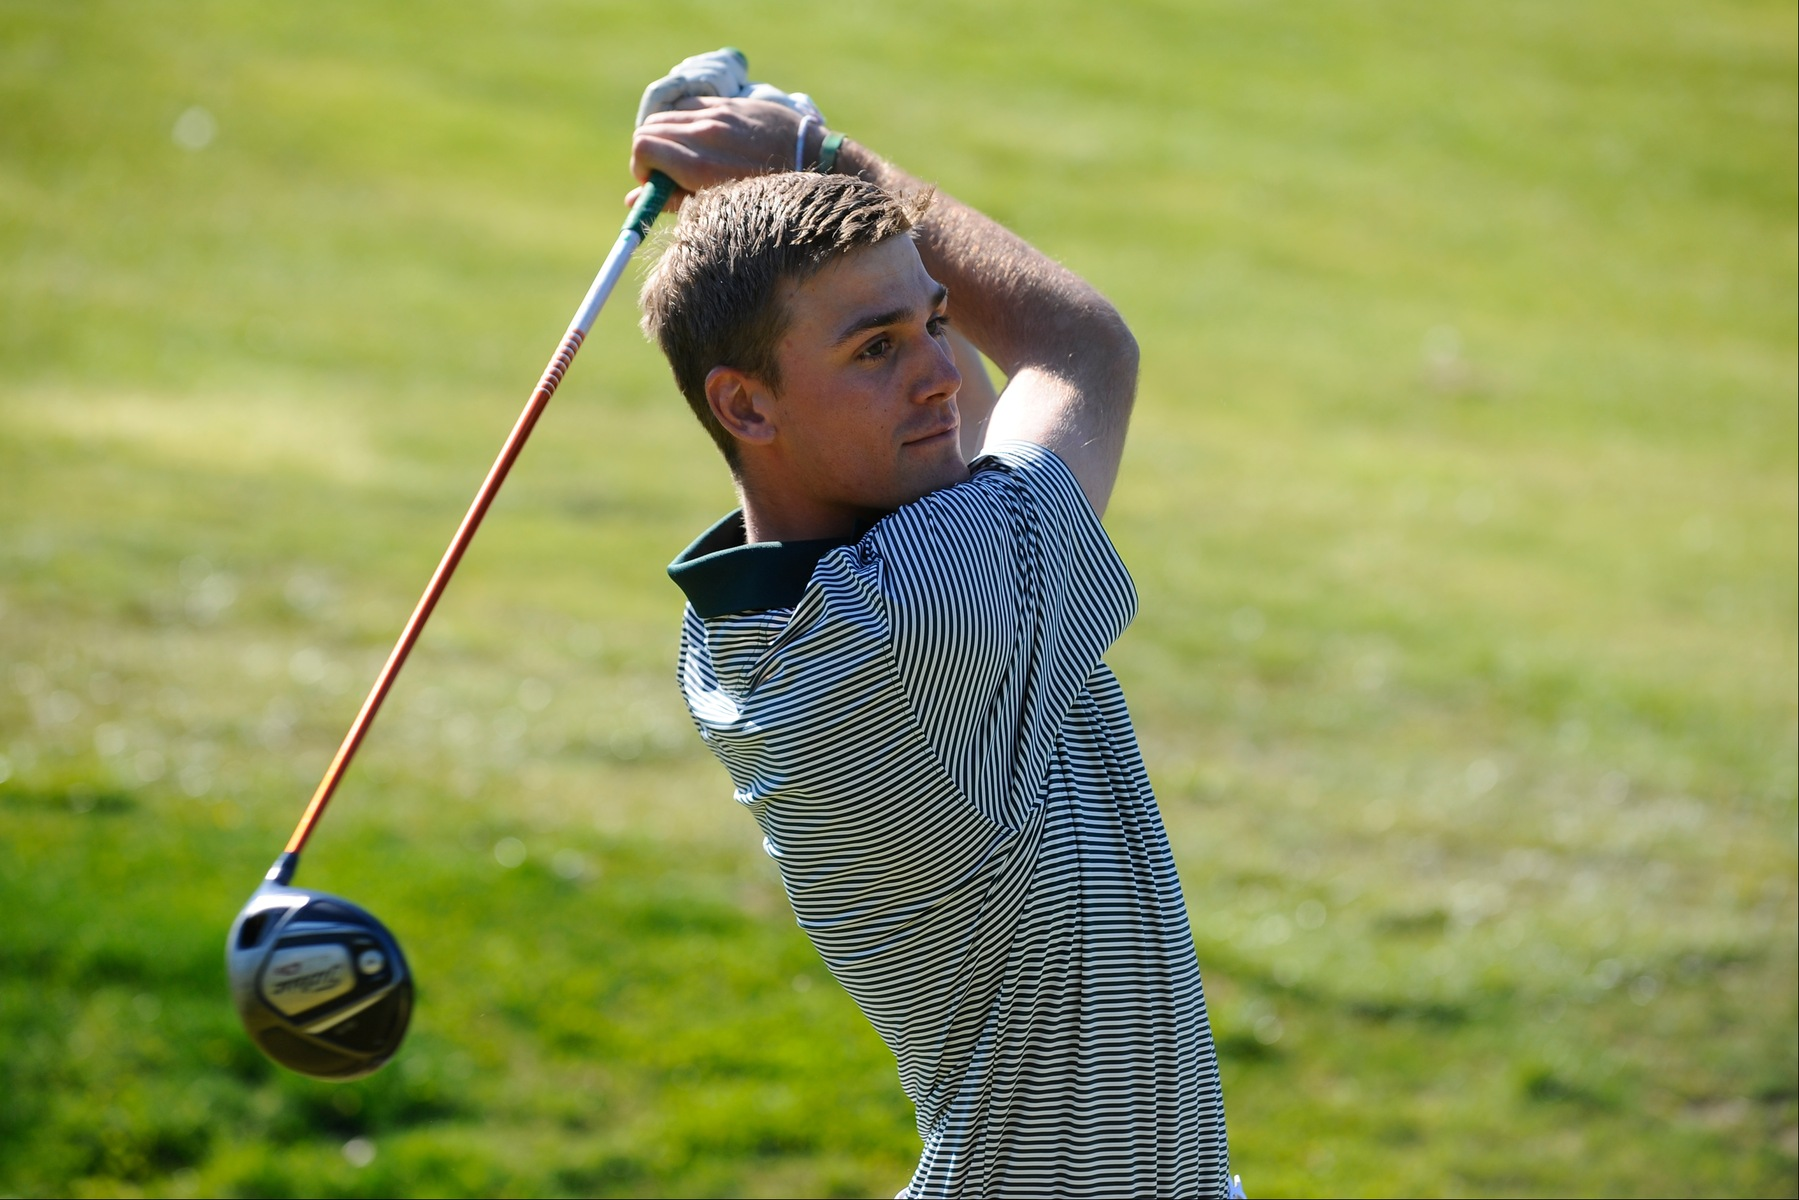 Ohio Men's Golf Splits Matches On Opening Day Of 2019 Earl Yestingsmeier Match Play